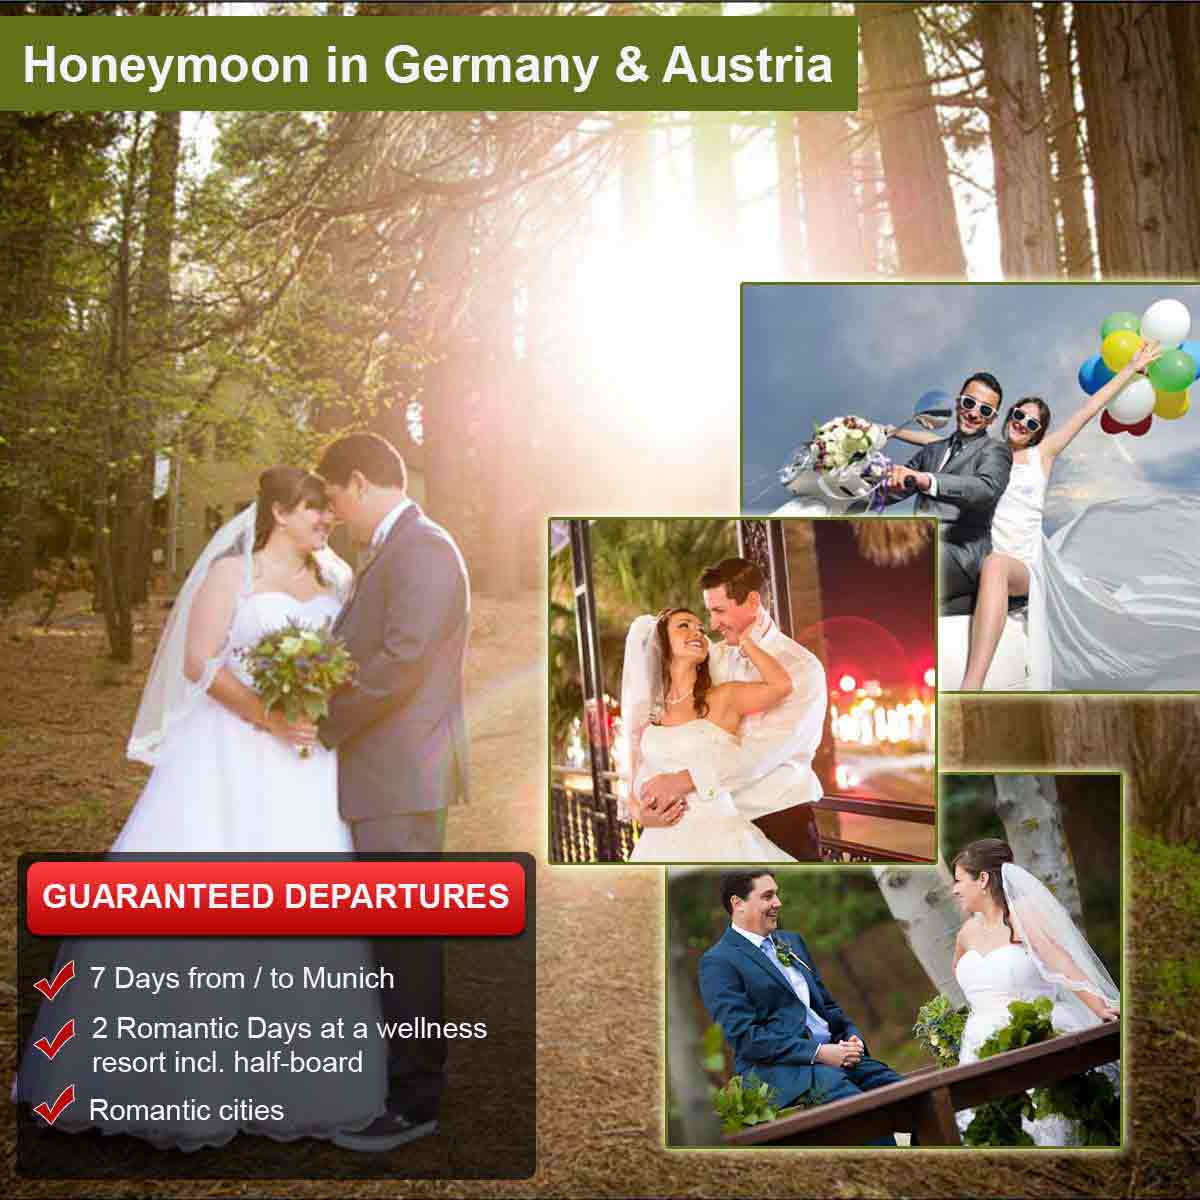 Honeymoon in Germany & Austria